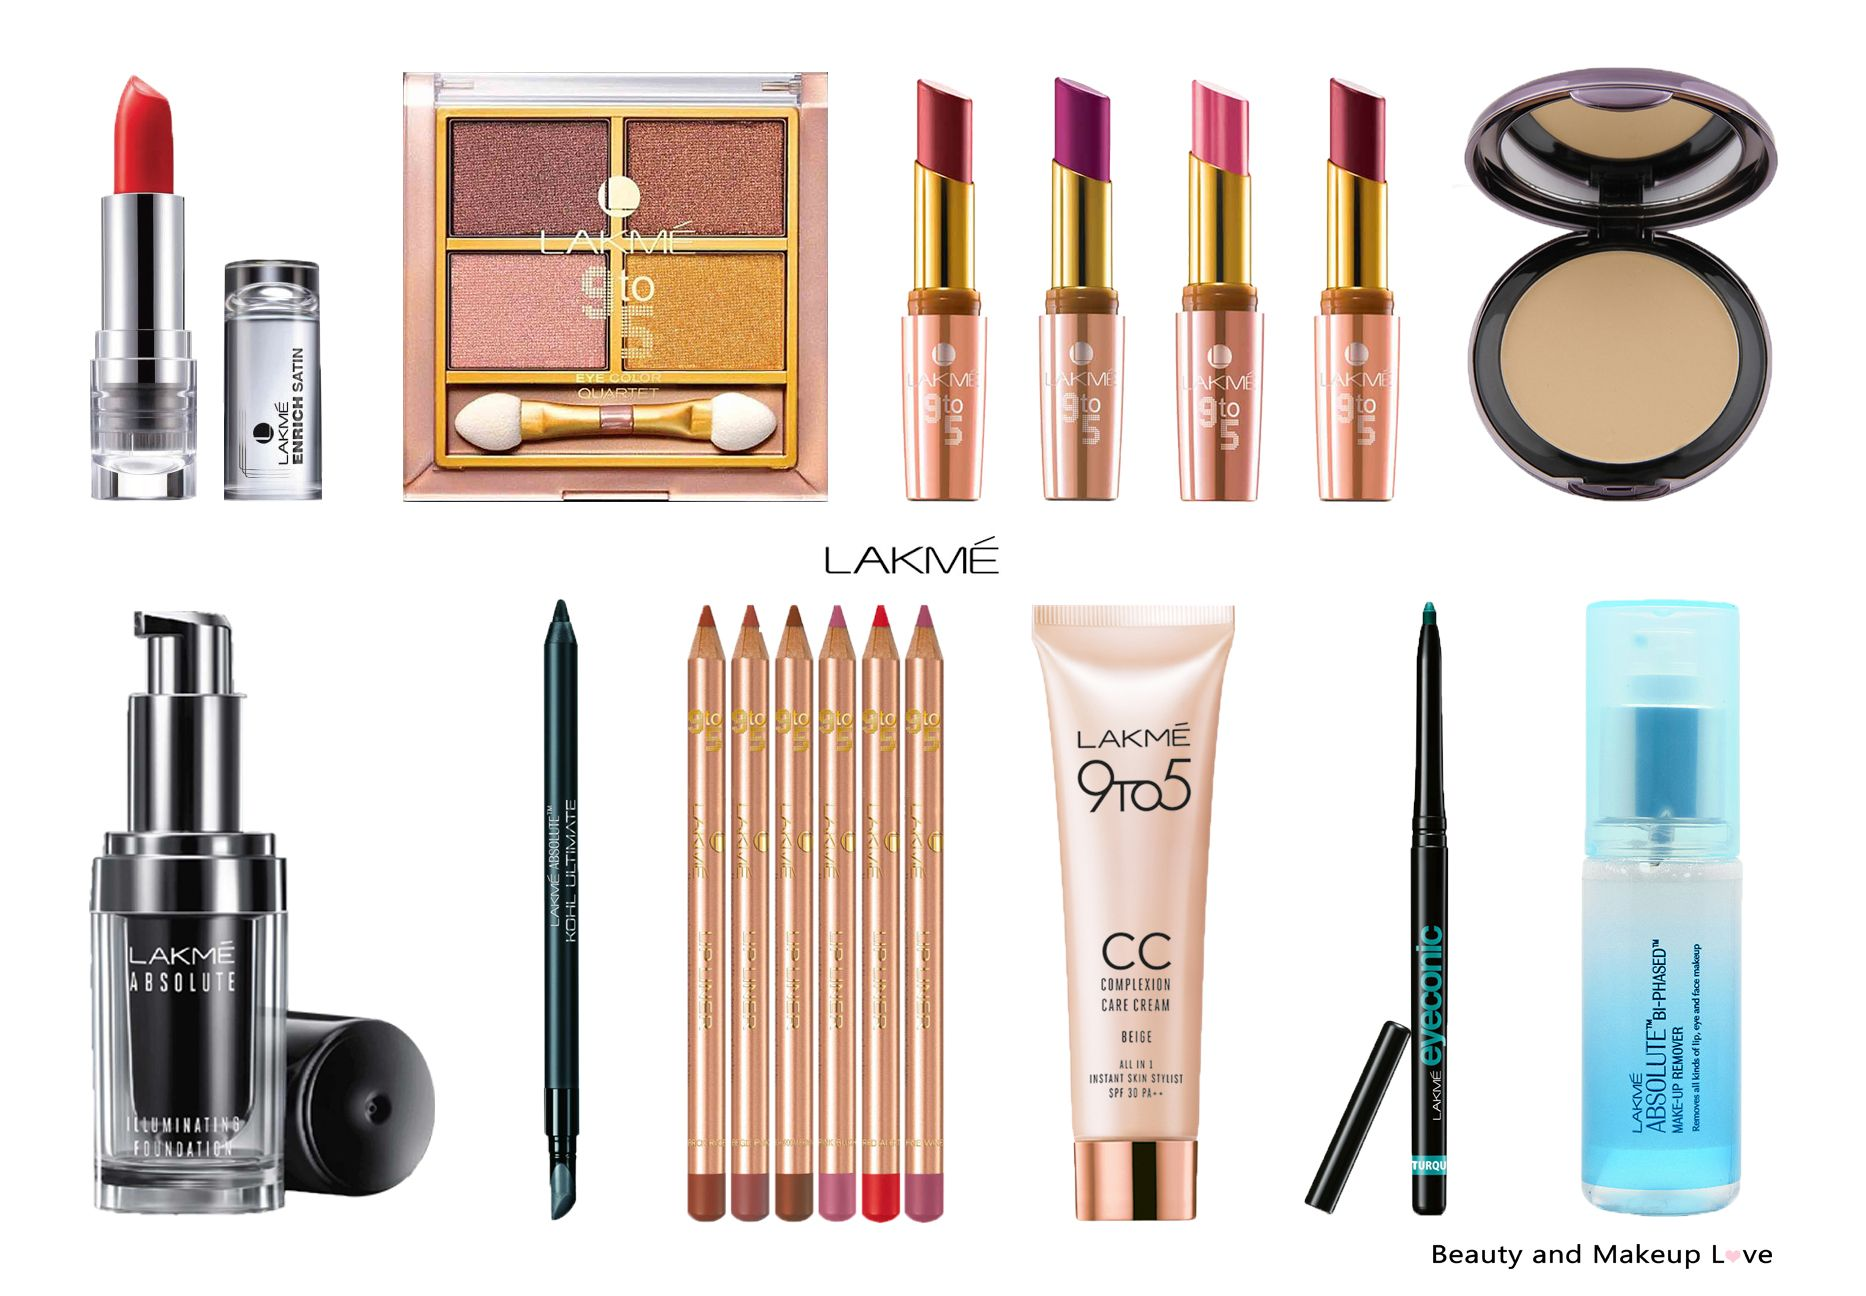 Top 10 Lakme Makeup Products In India Mini Reviews